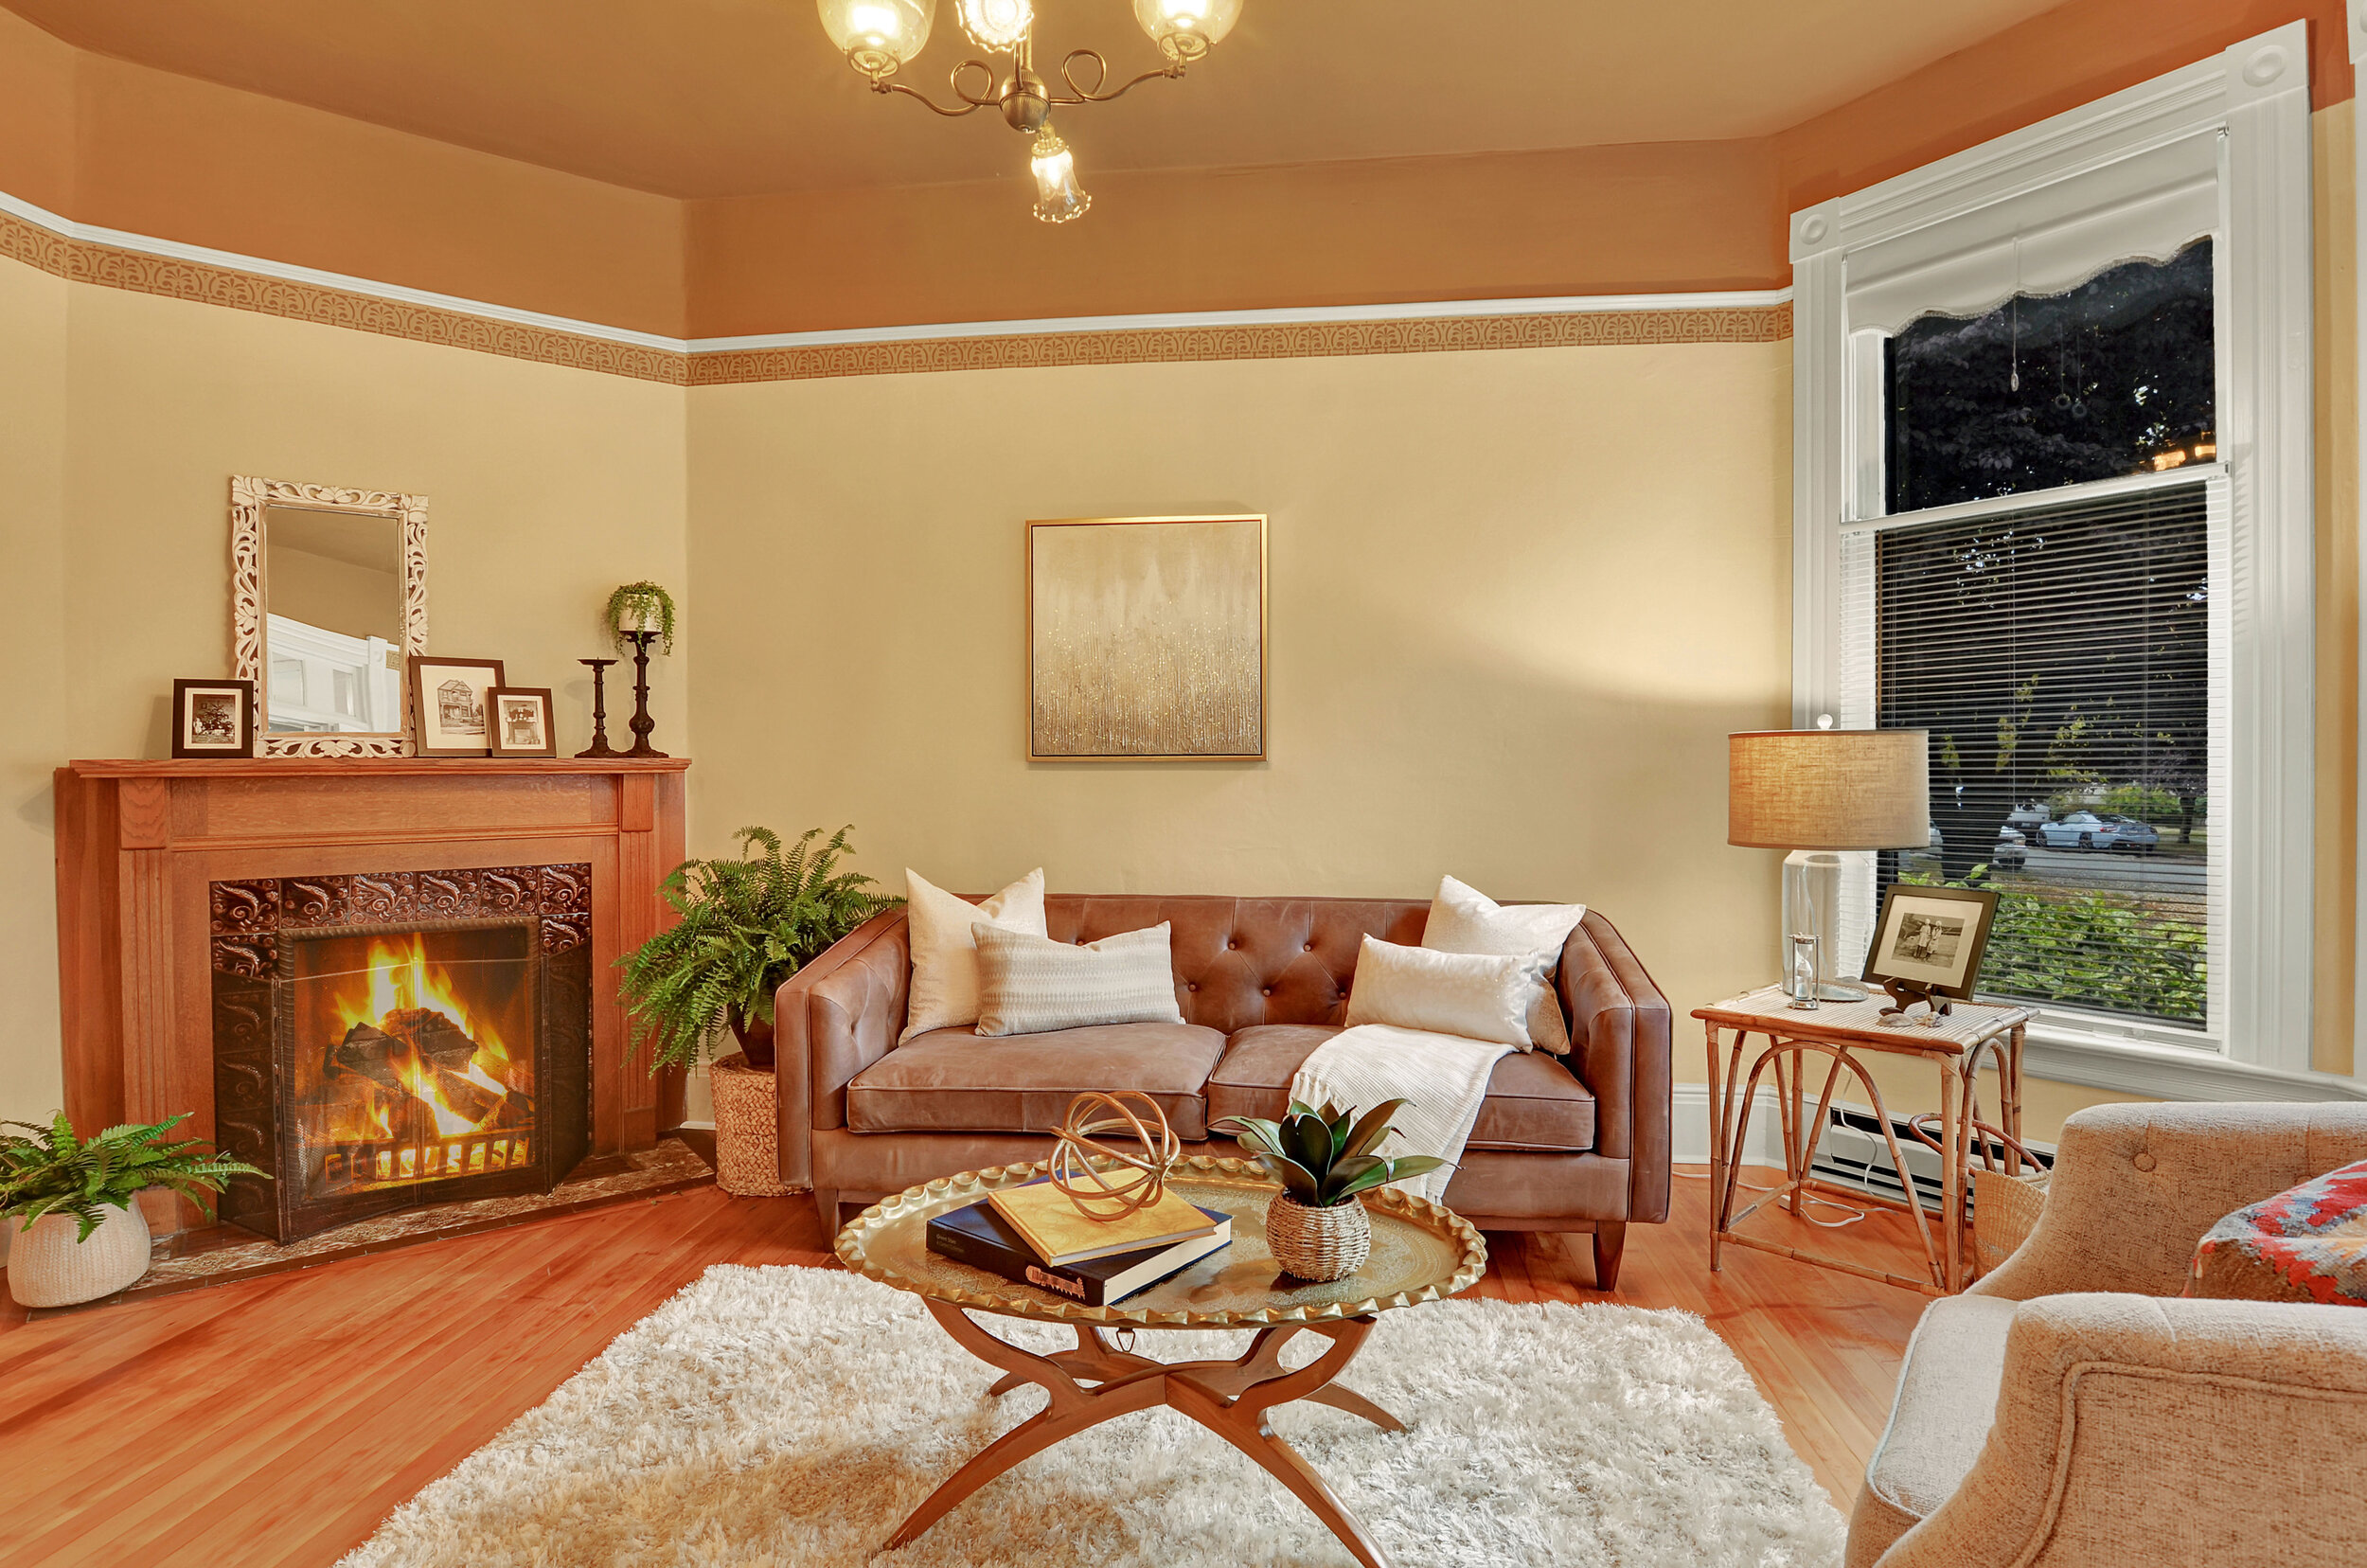 An oak fireplace built in the Rumford style with Victorian glaze tiles and stenciled scrollwork adorn the living room.